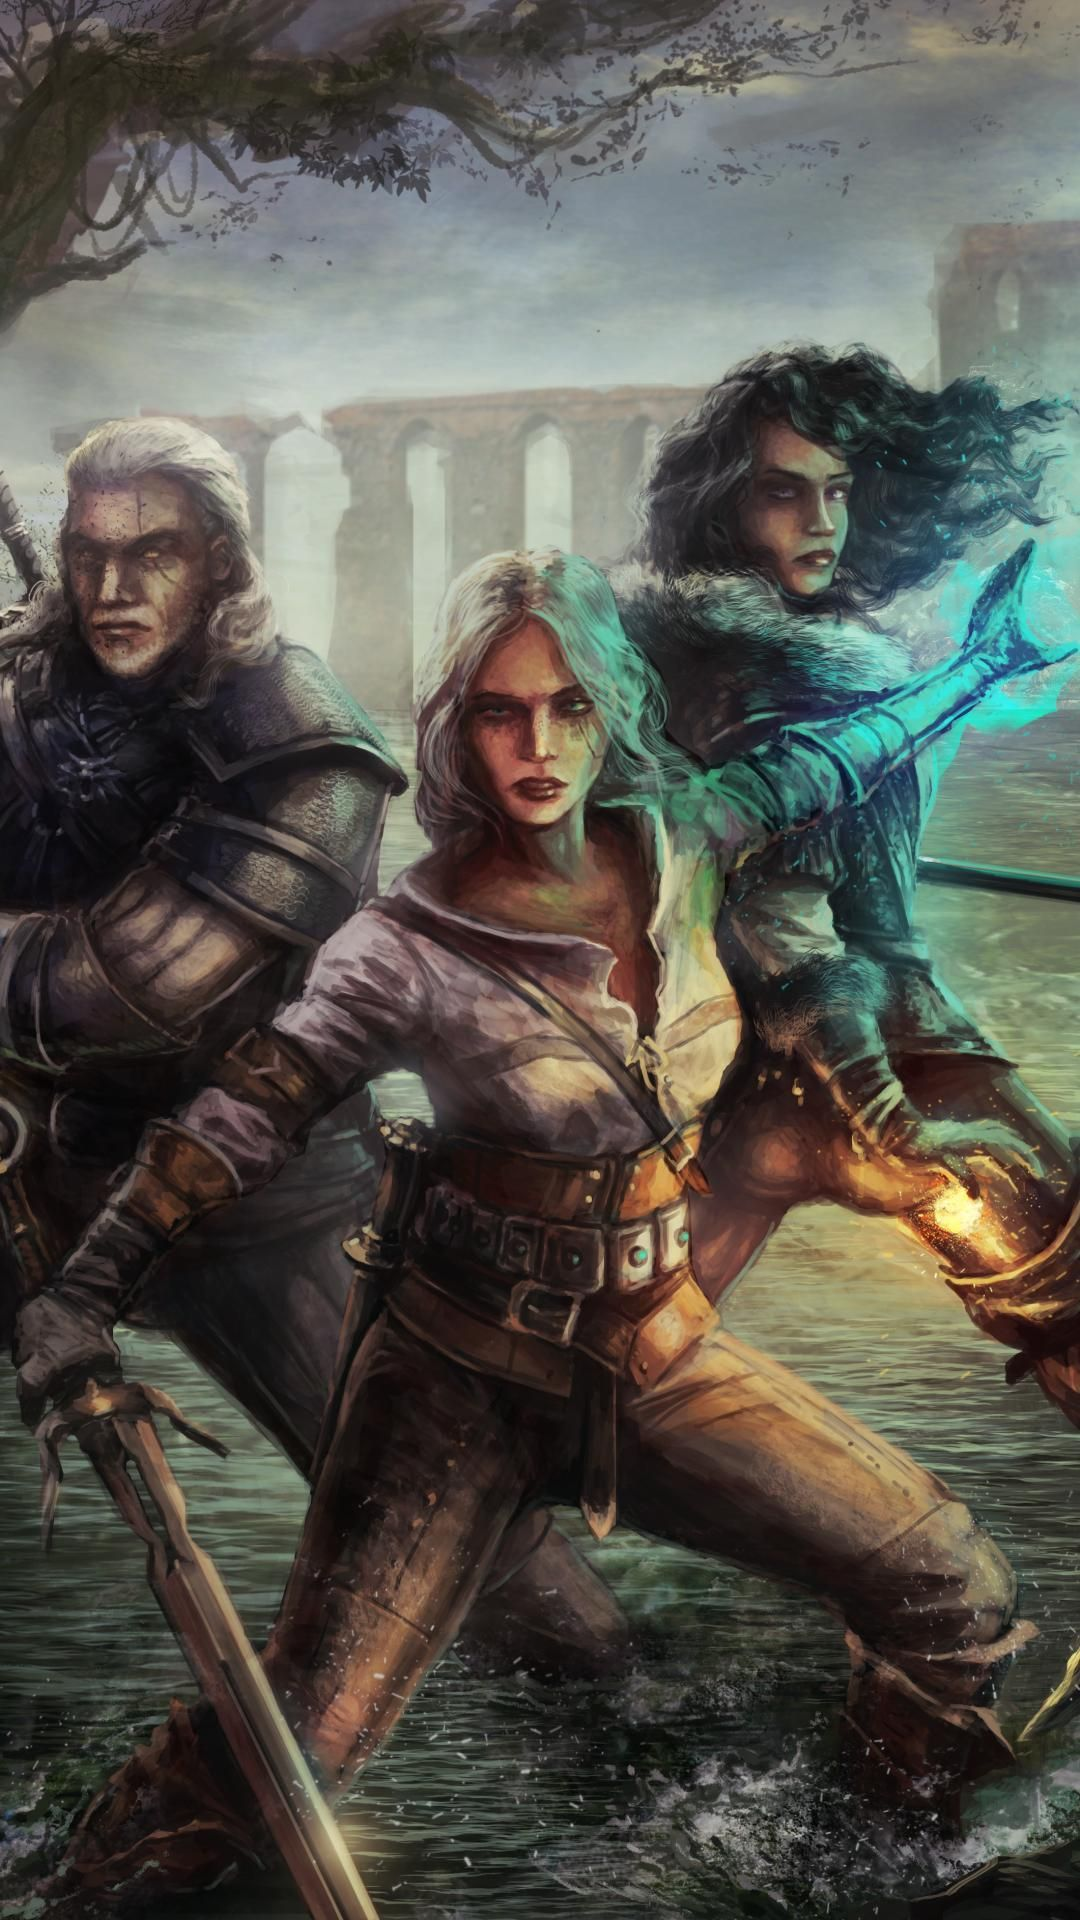 The Witcher 3 Backgrounds » Hupages » Download Iphone